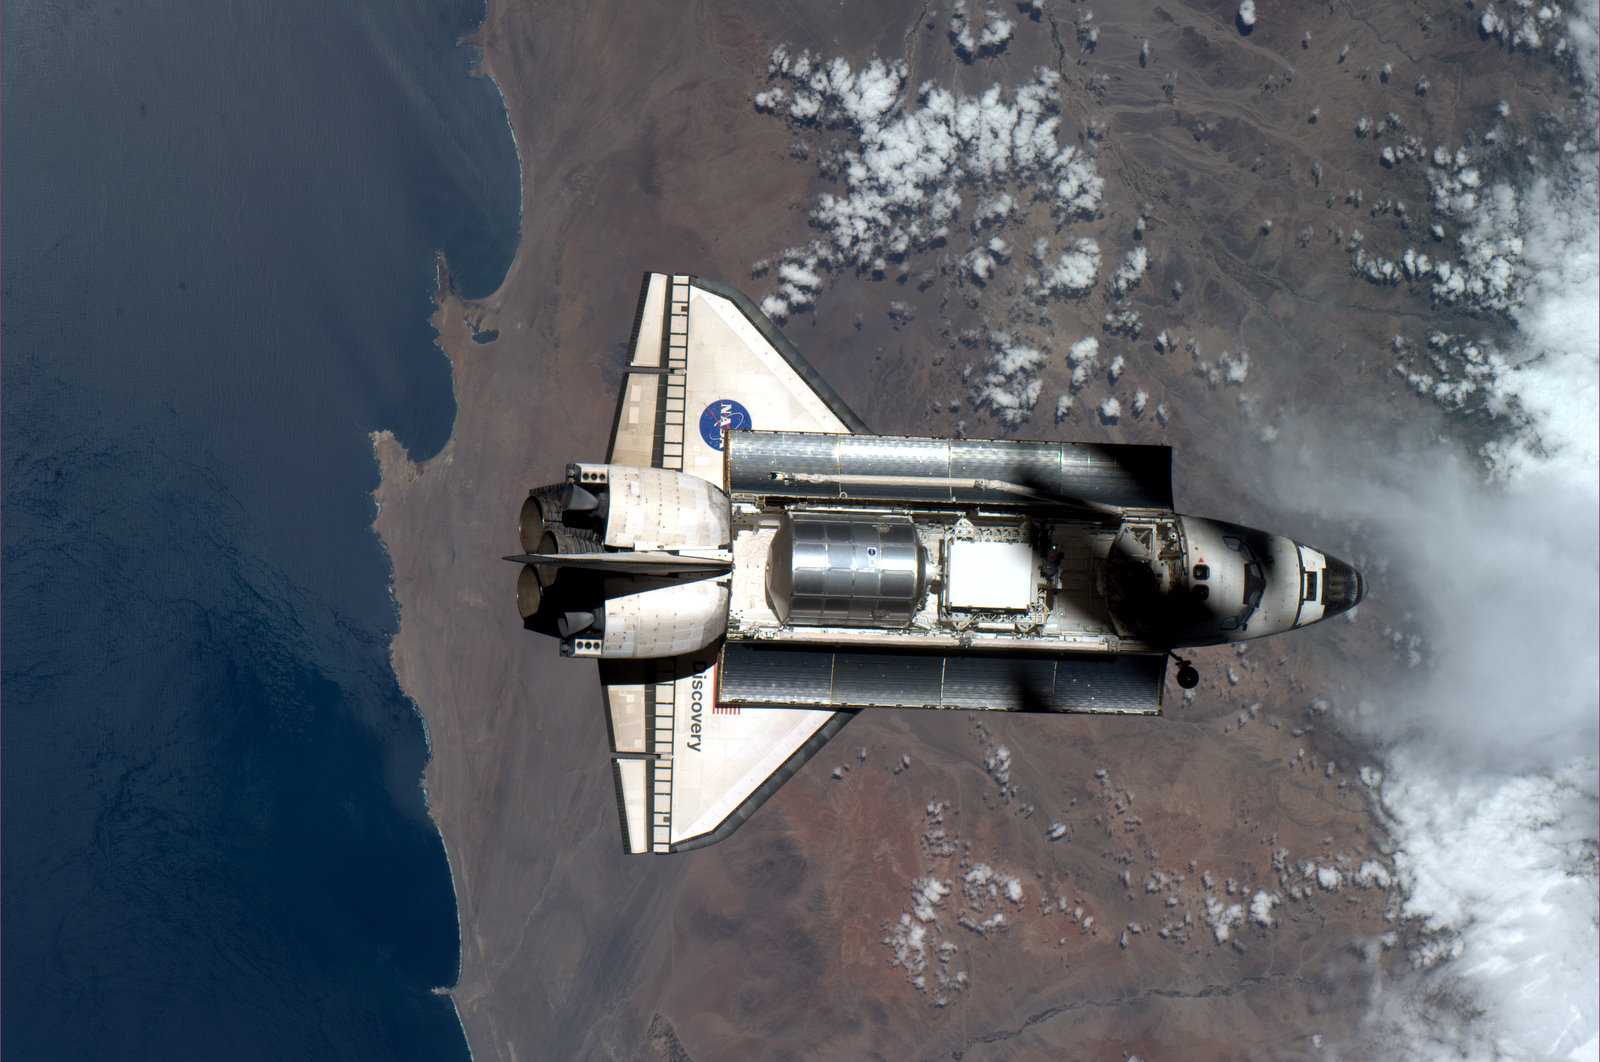 us space shuttle discovery - photo #39